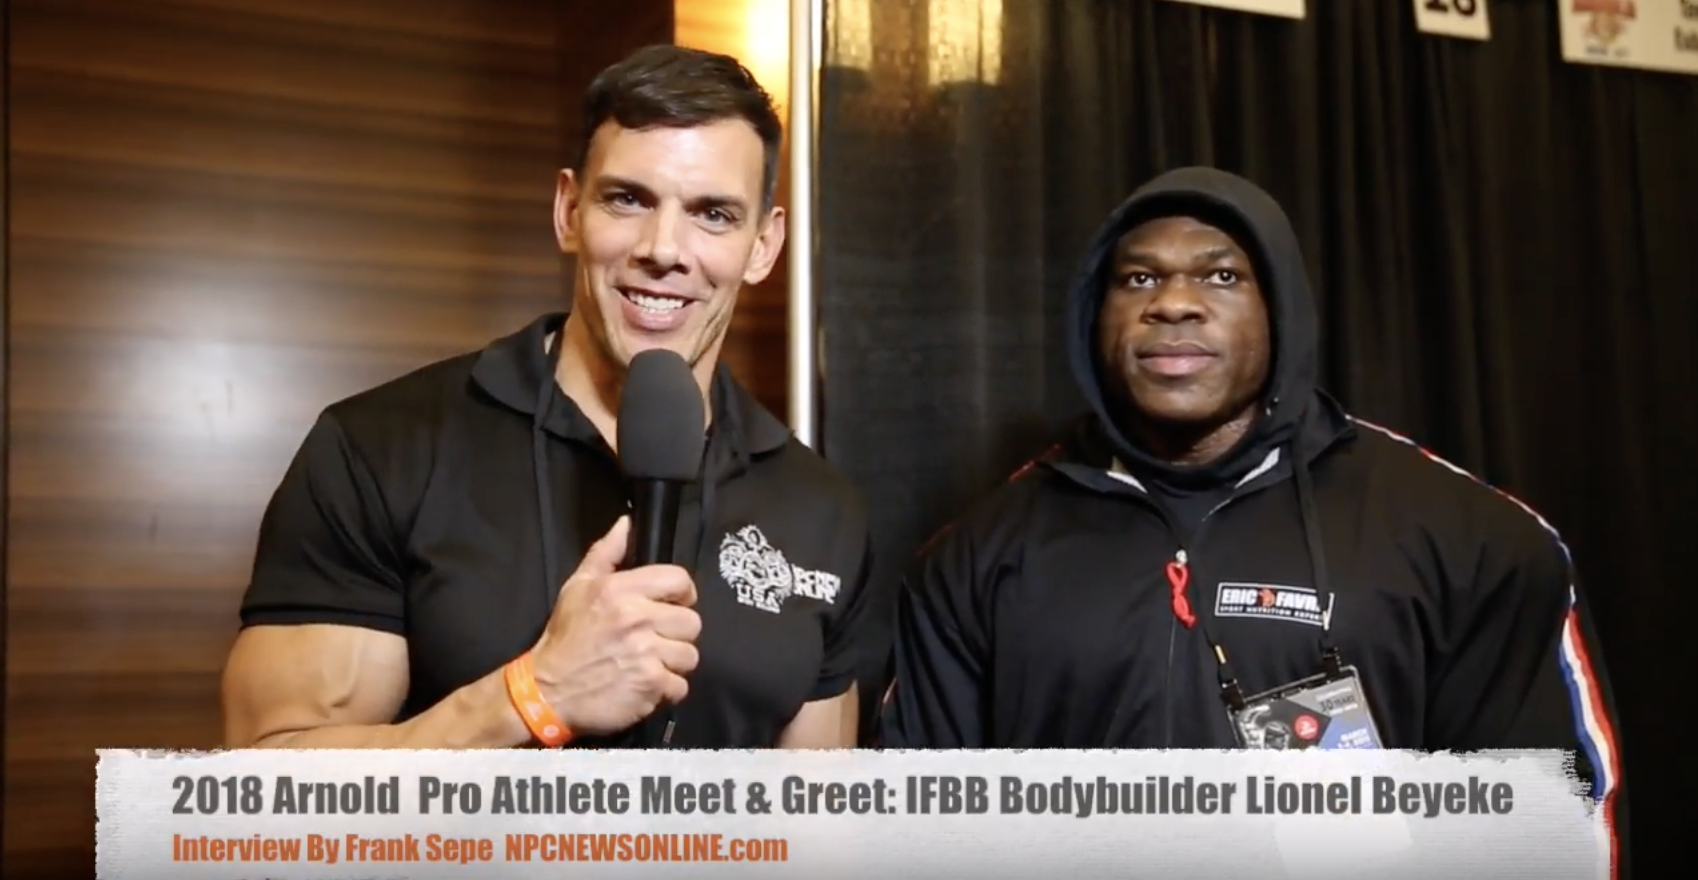 IFBB Bodybuilder Lionel Beyeke At The 2018 Arnold Interviewed By NPC News Online Editor In Chief Frank Sepe.